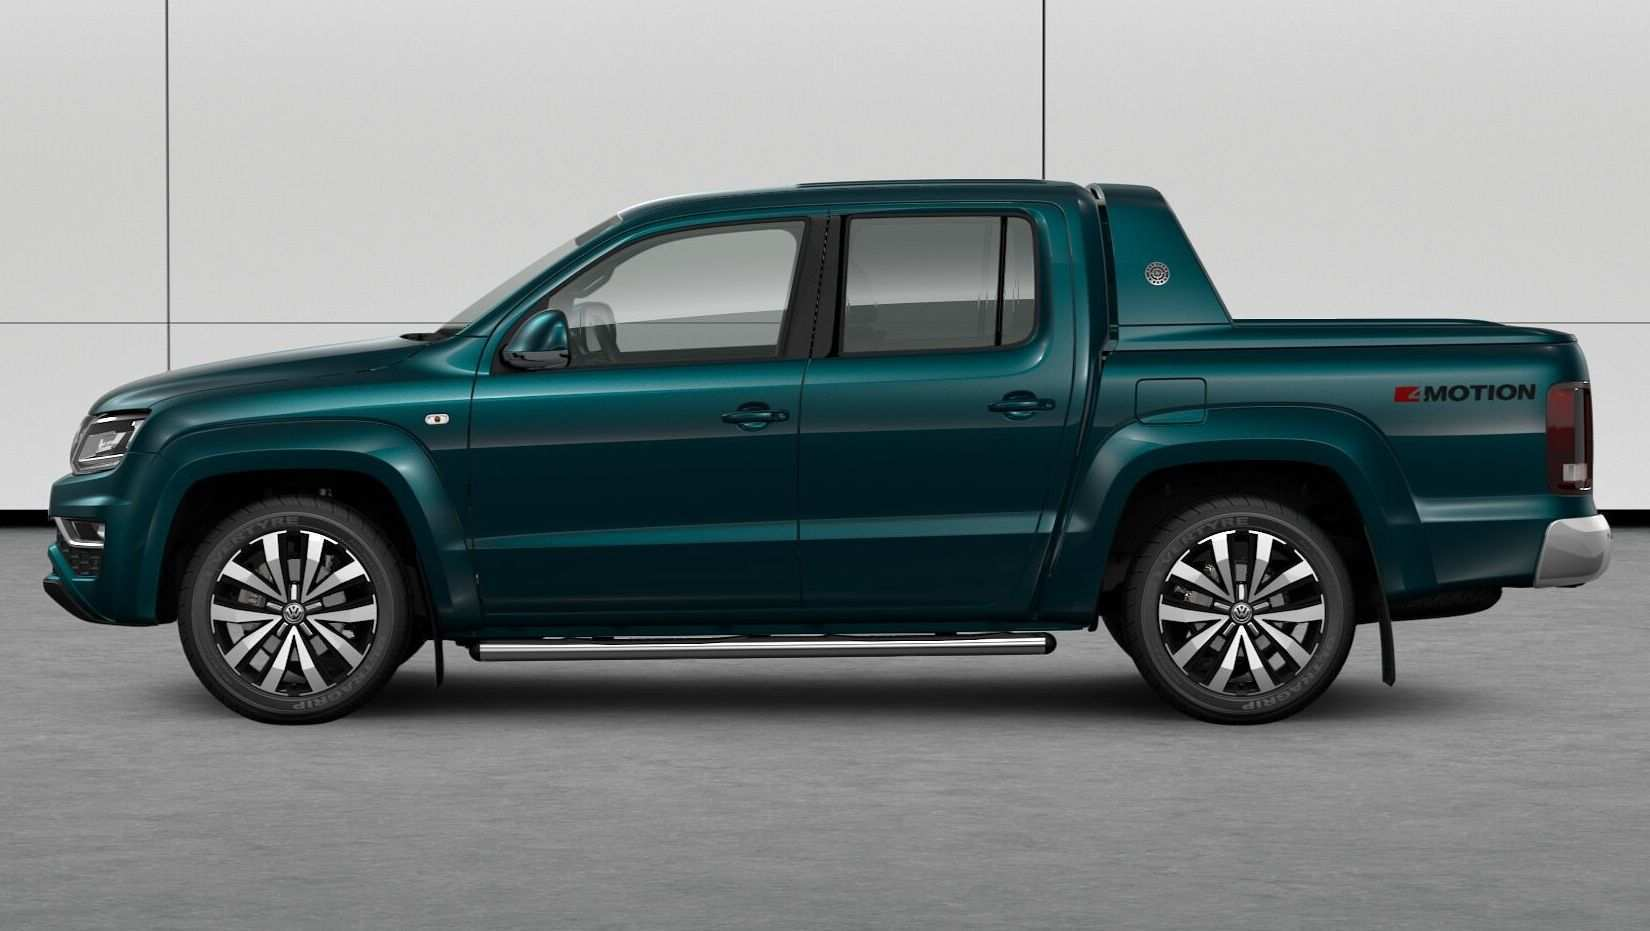 90 Gallery of 2020 VW Amarok 2018 Interior for 2020 VW Amarok 2018